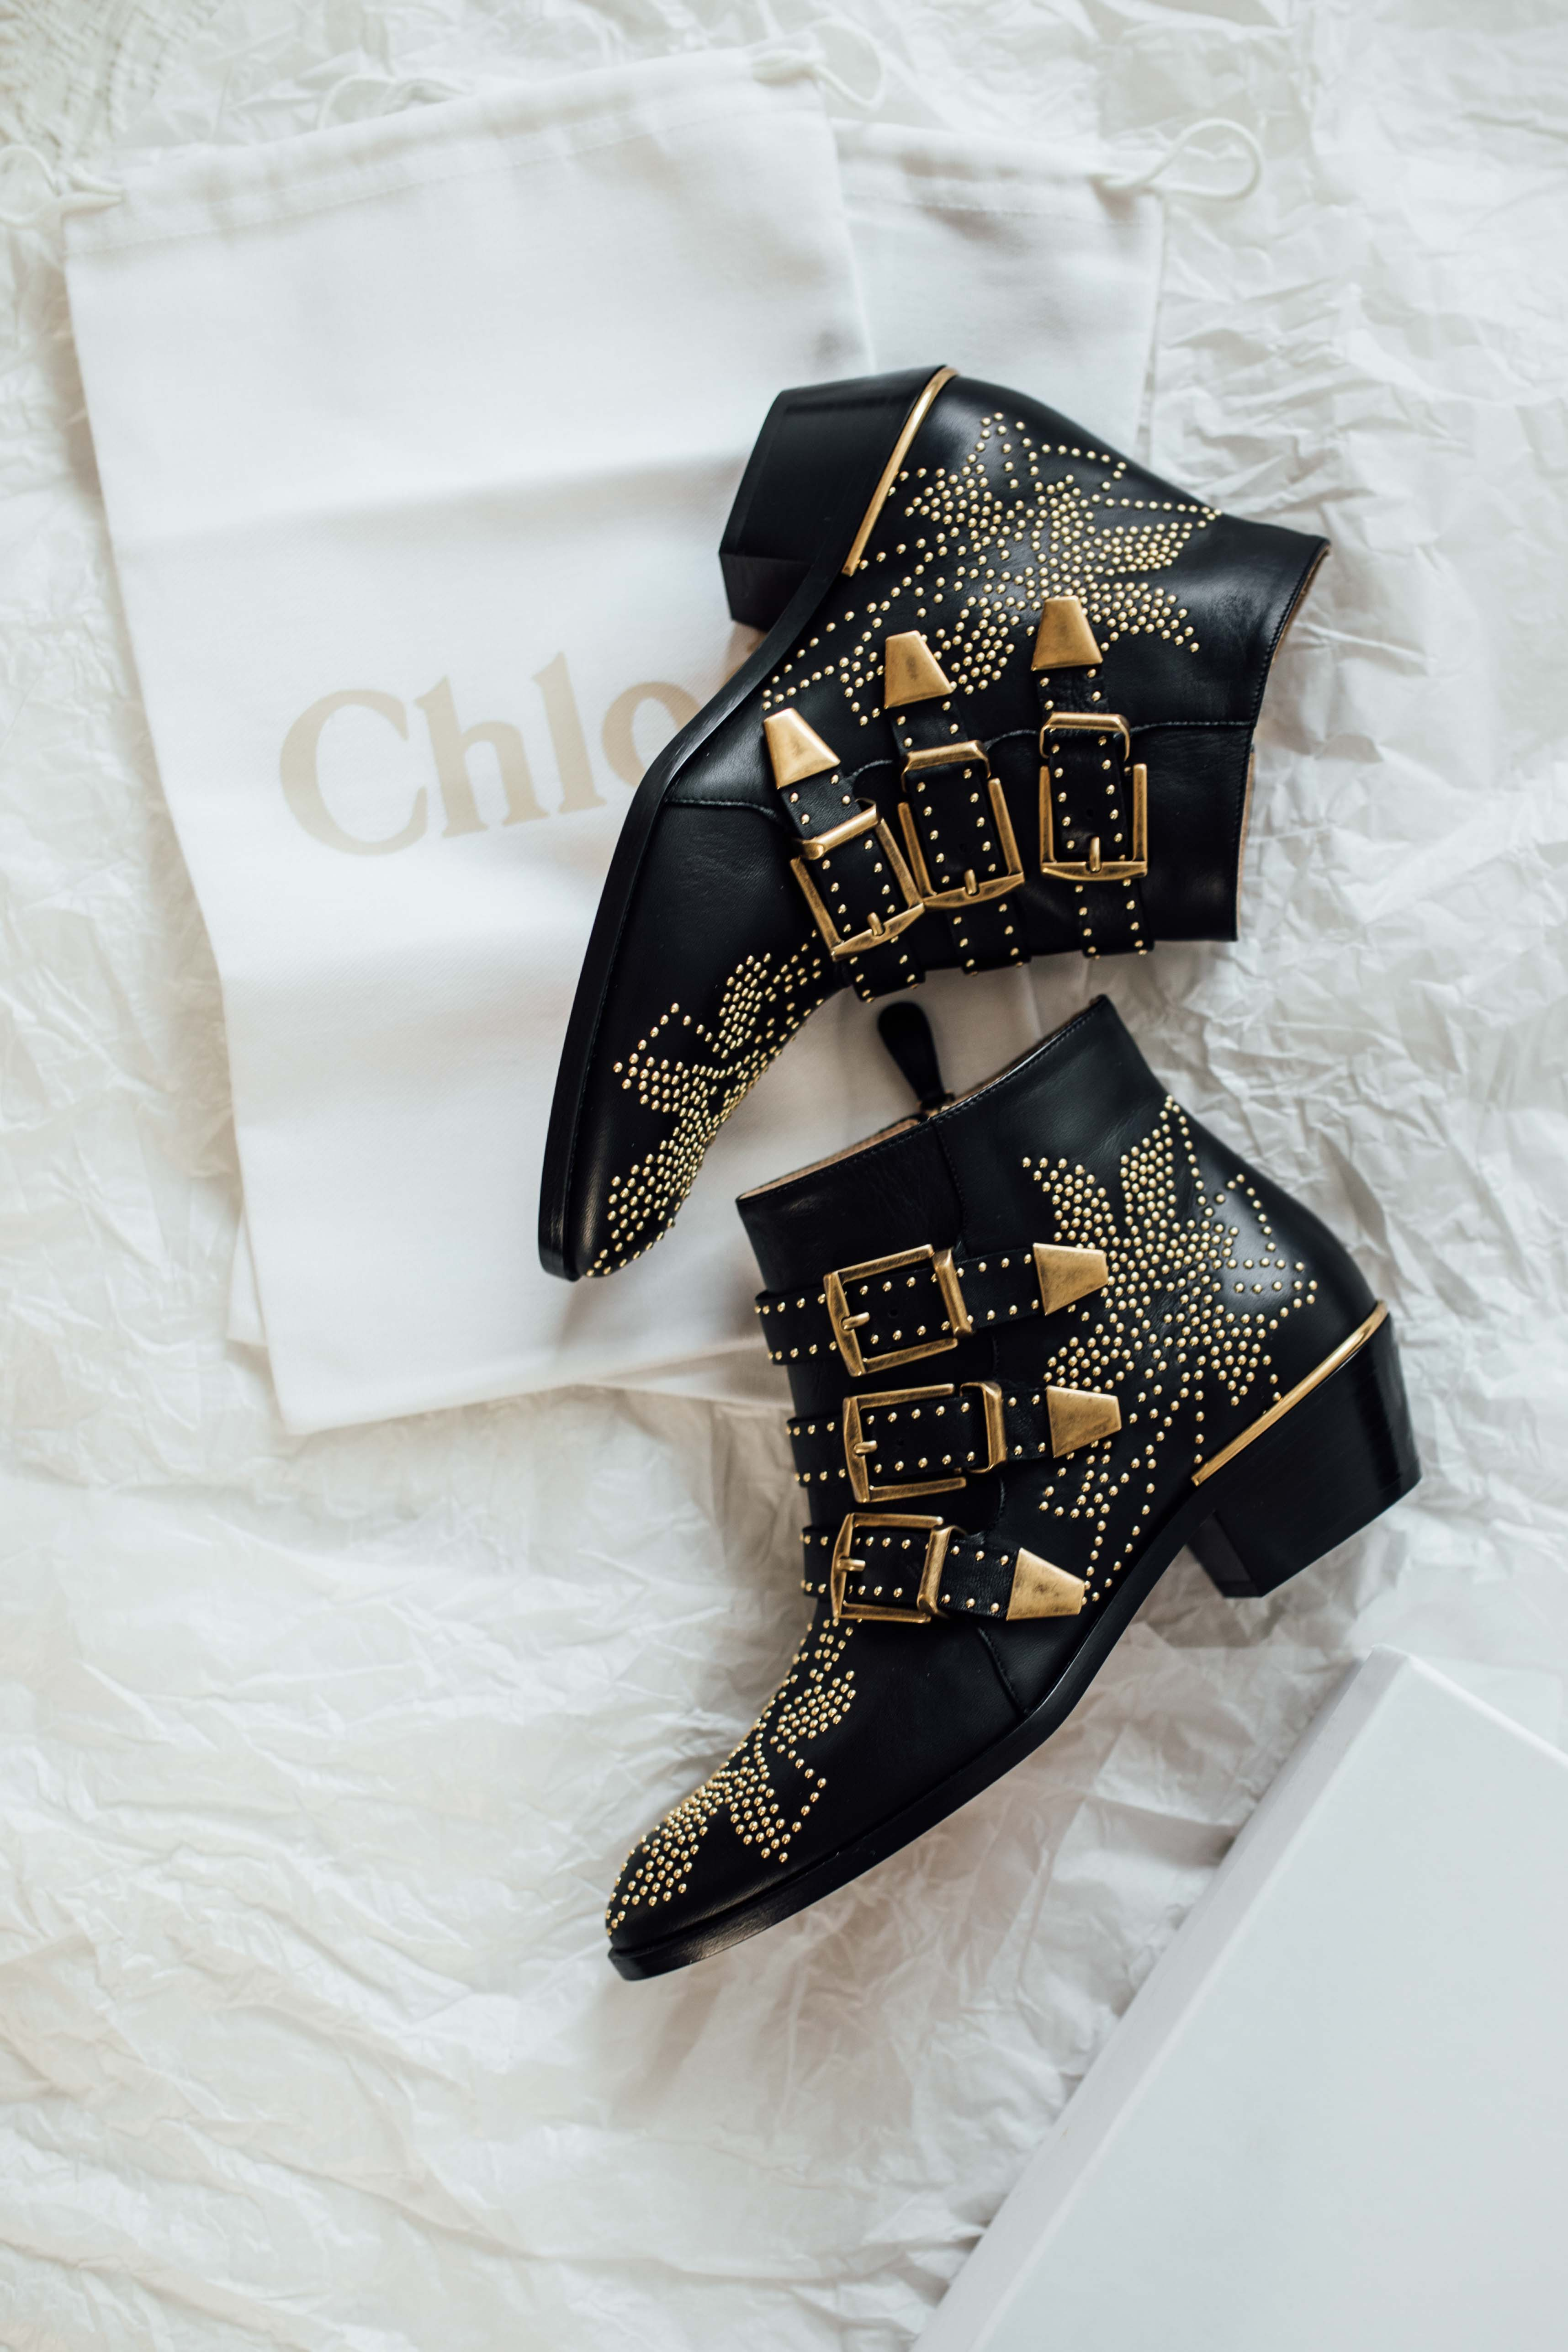 New In: Chloé Susanna Boots | You rock my life